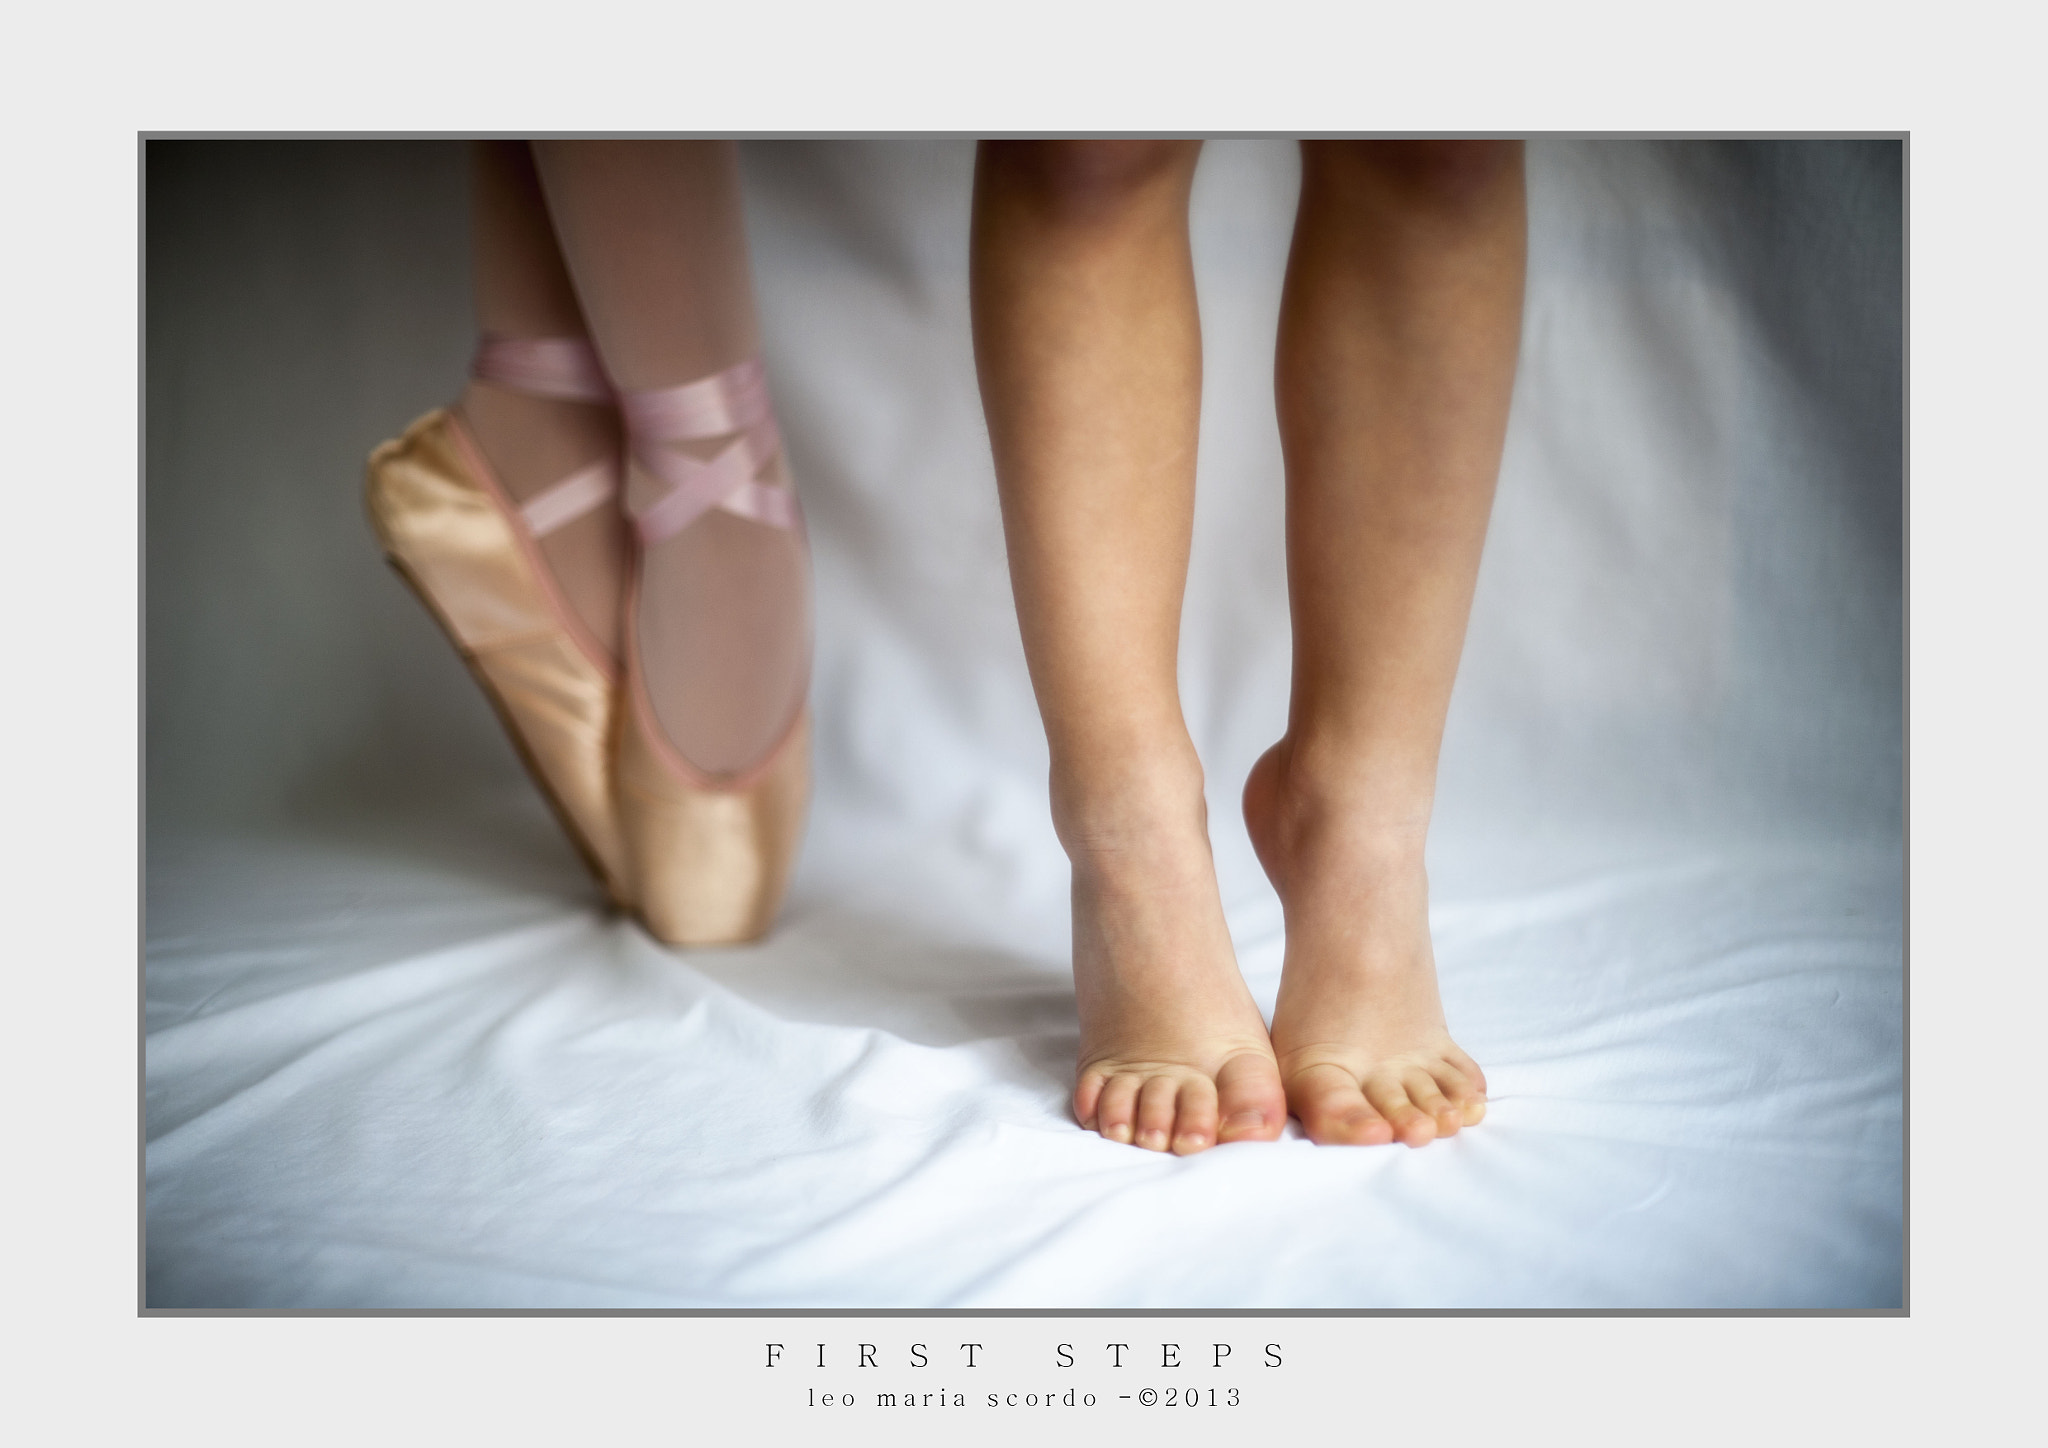 Photograph FIRST STEPS by Leo Maria Scordo on 500px